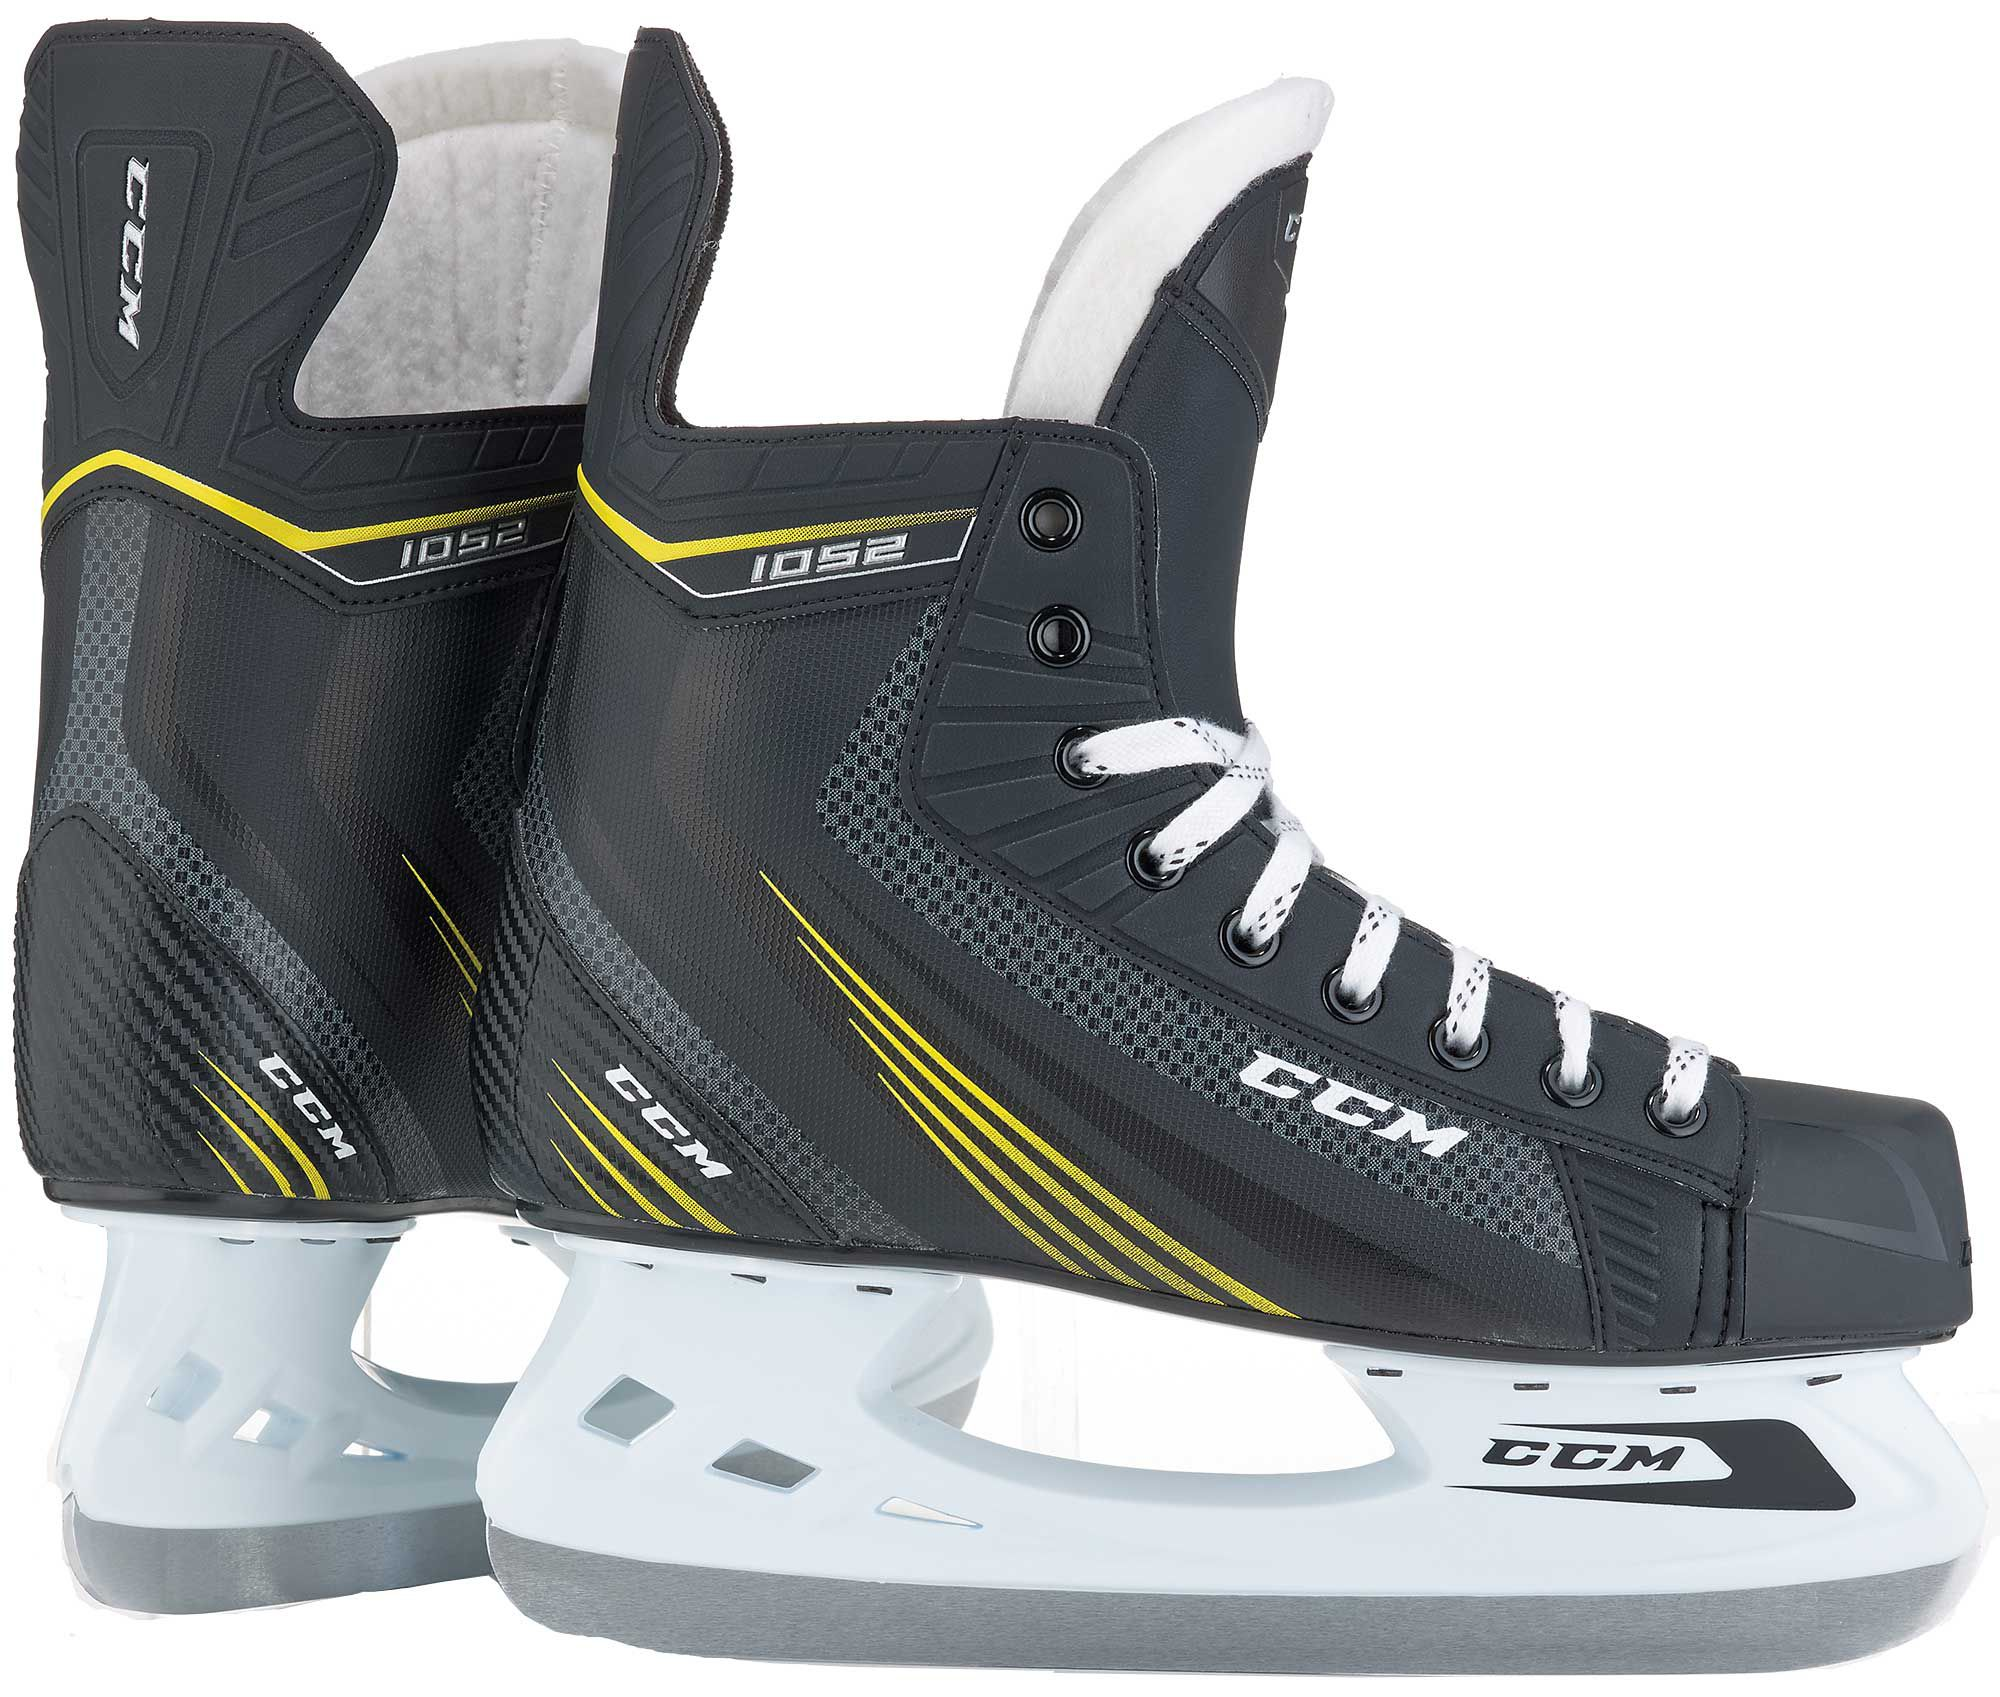 CCM Tacks 1052 Senior Ice Hockey Skates